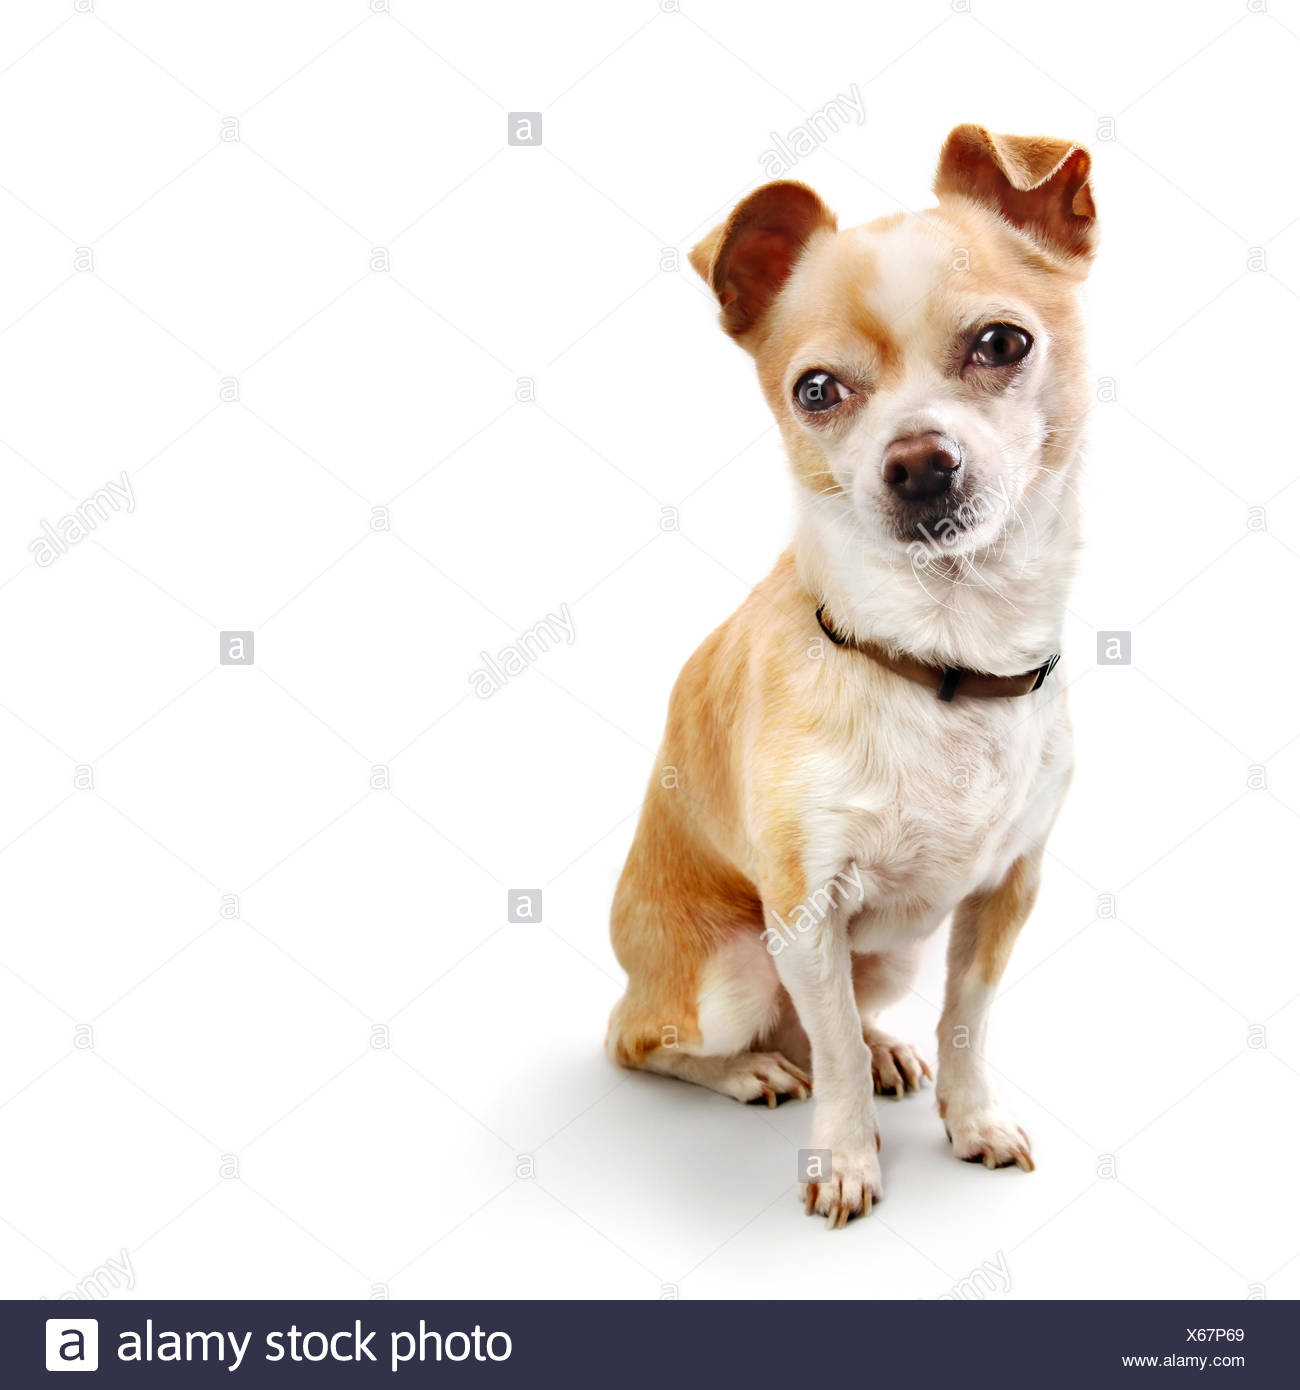 Single chihuahua poses on white with shadow - Stock Image